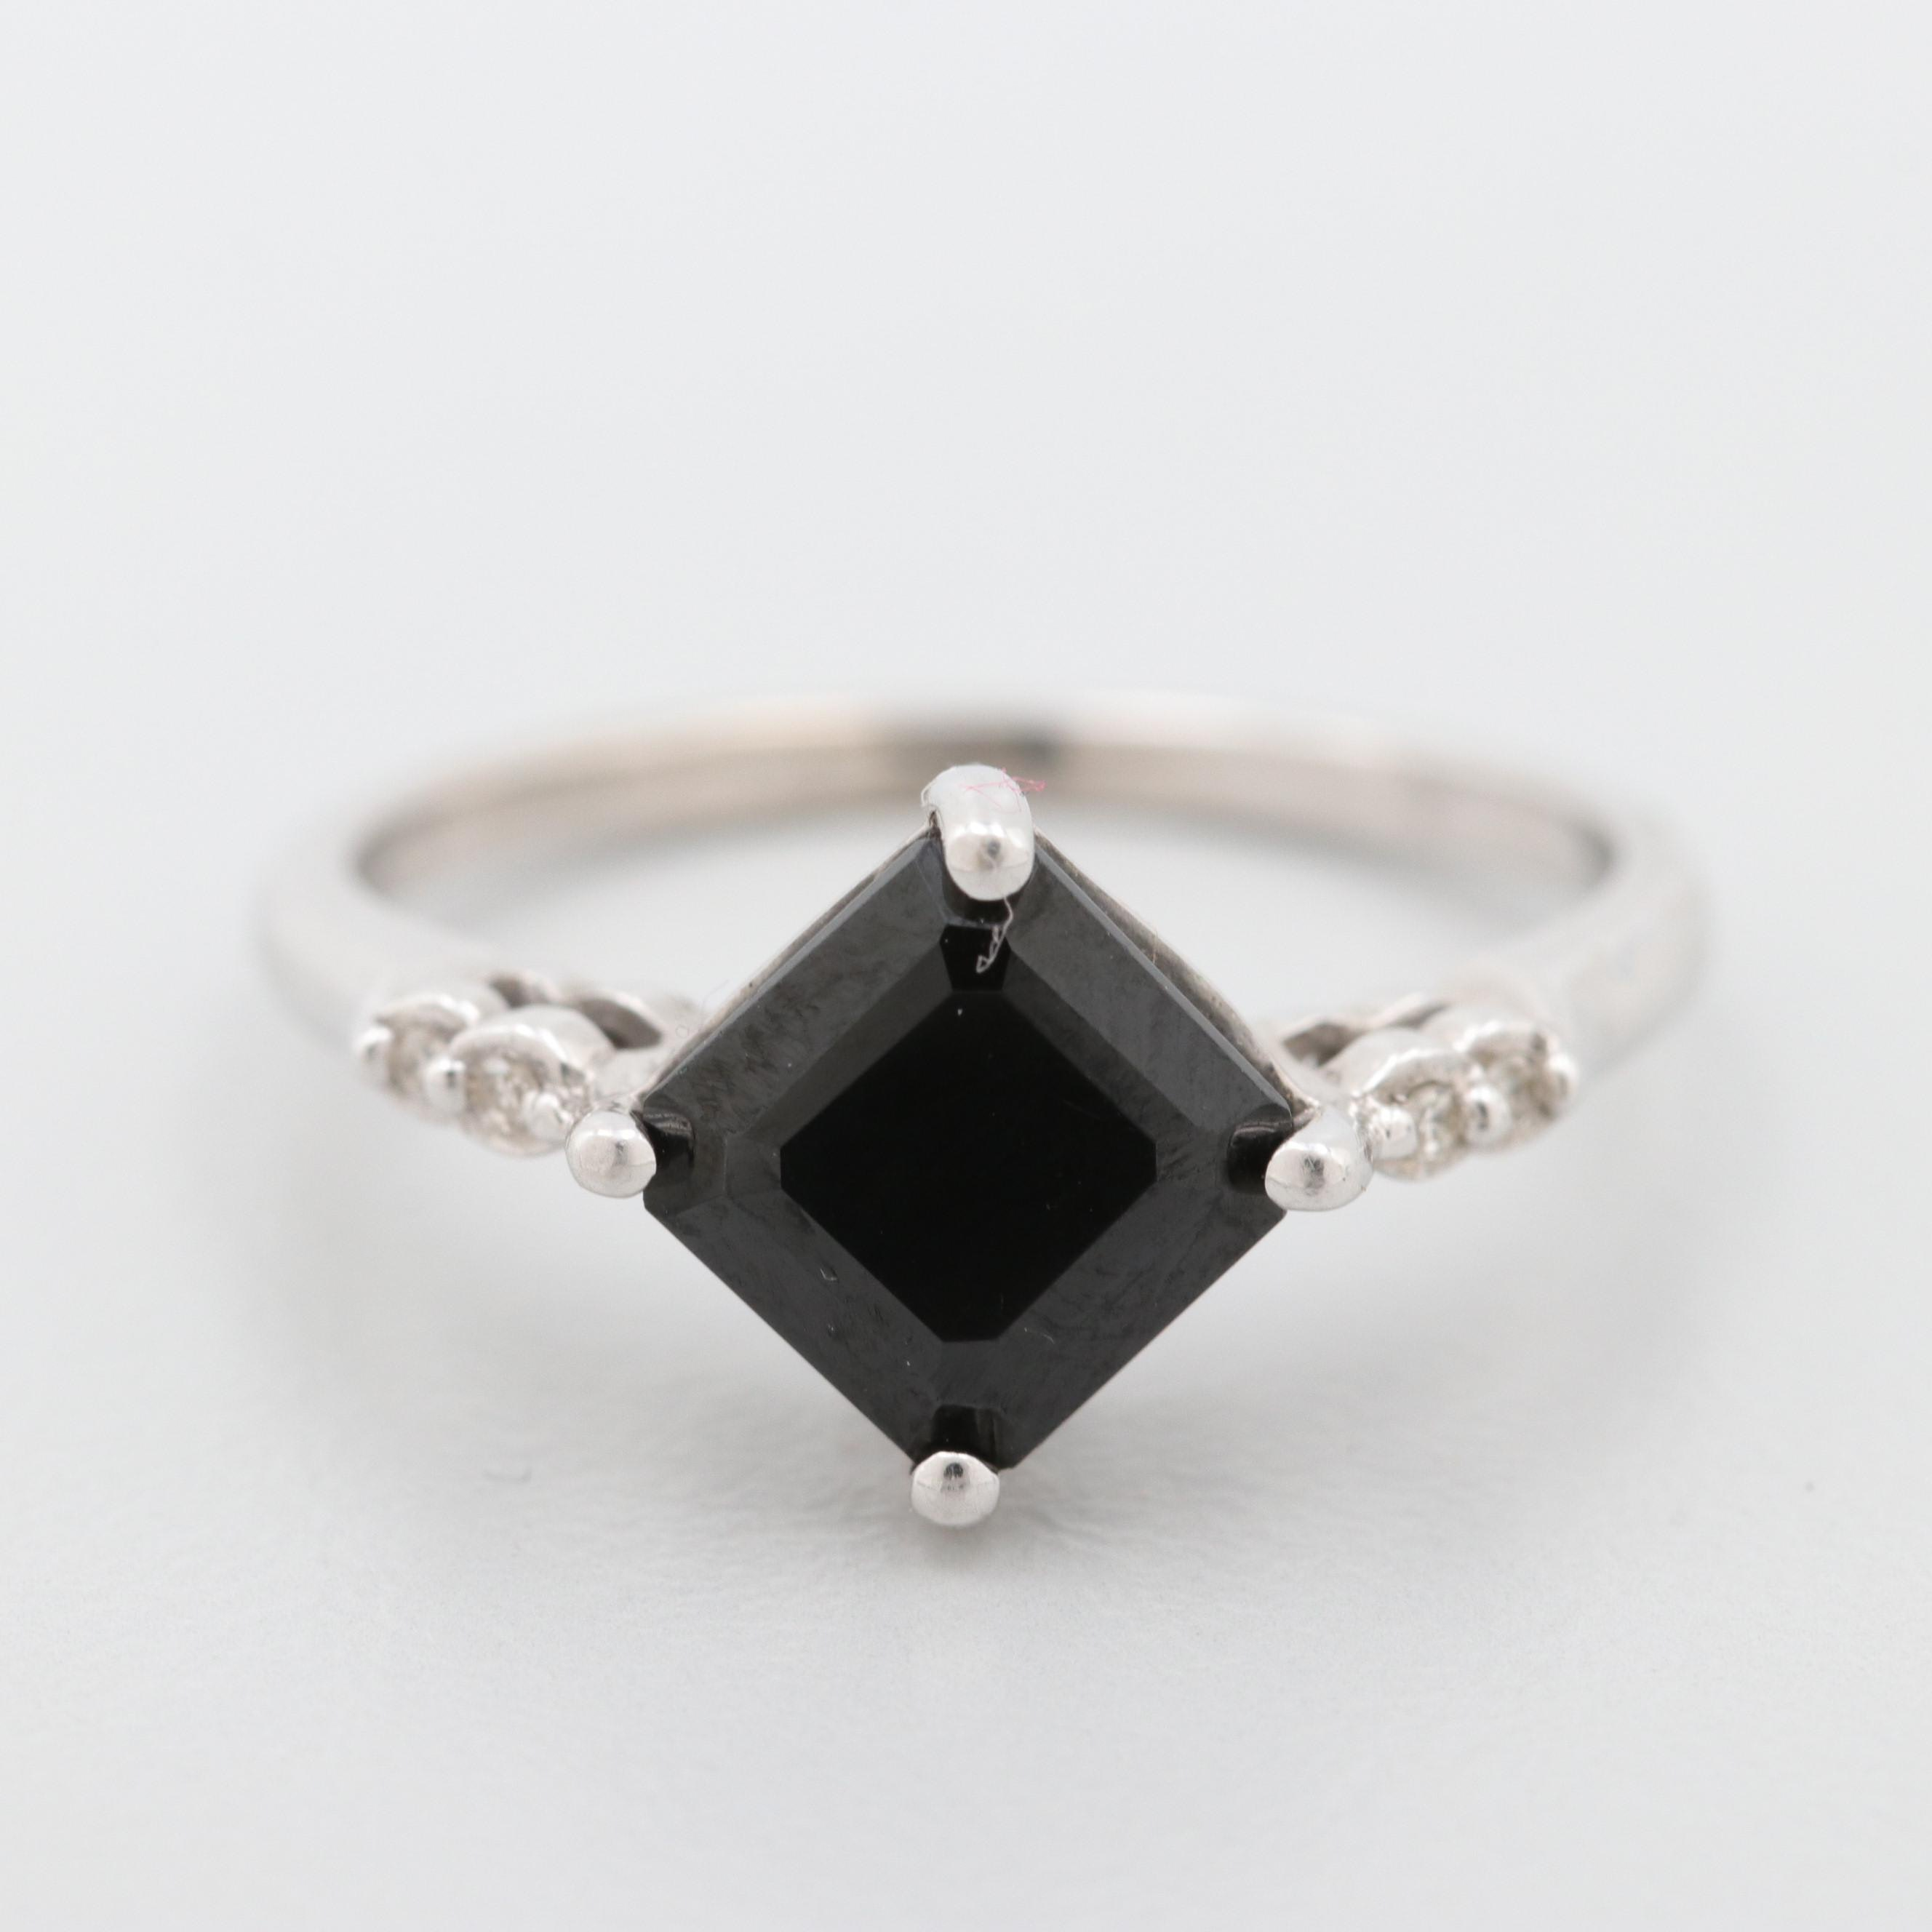 10K White Gold Black Onyx and Diamond Ring